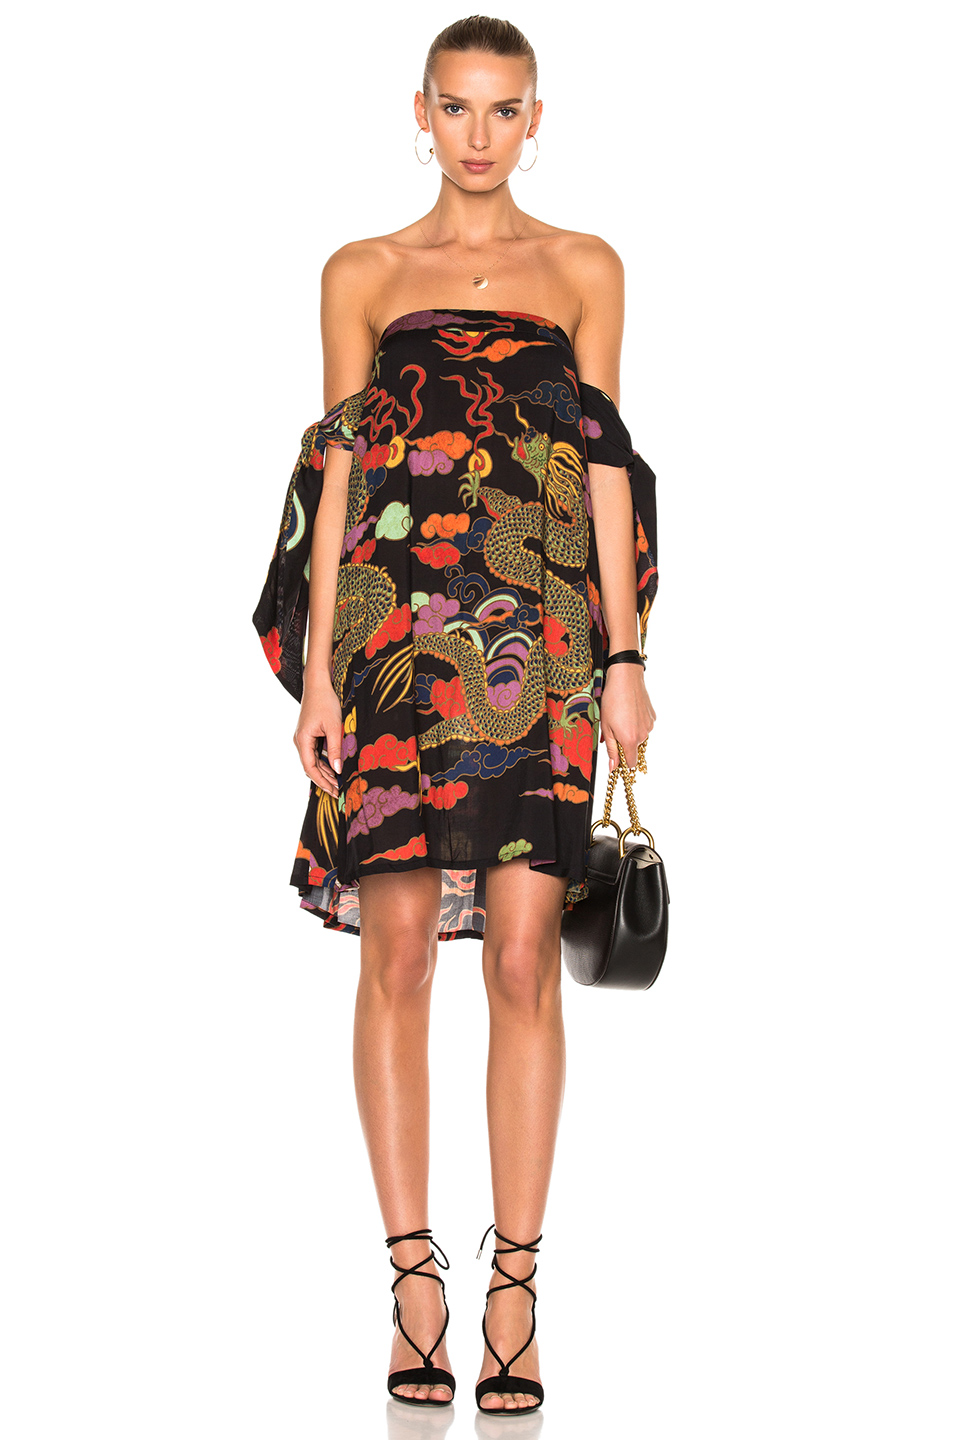 ADRIANA DEGREAS Dragoon Off The Shoulder Dress in Abstract,Black,Green,Red,Orange